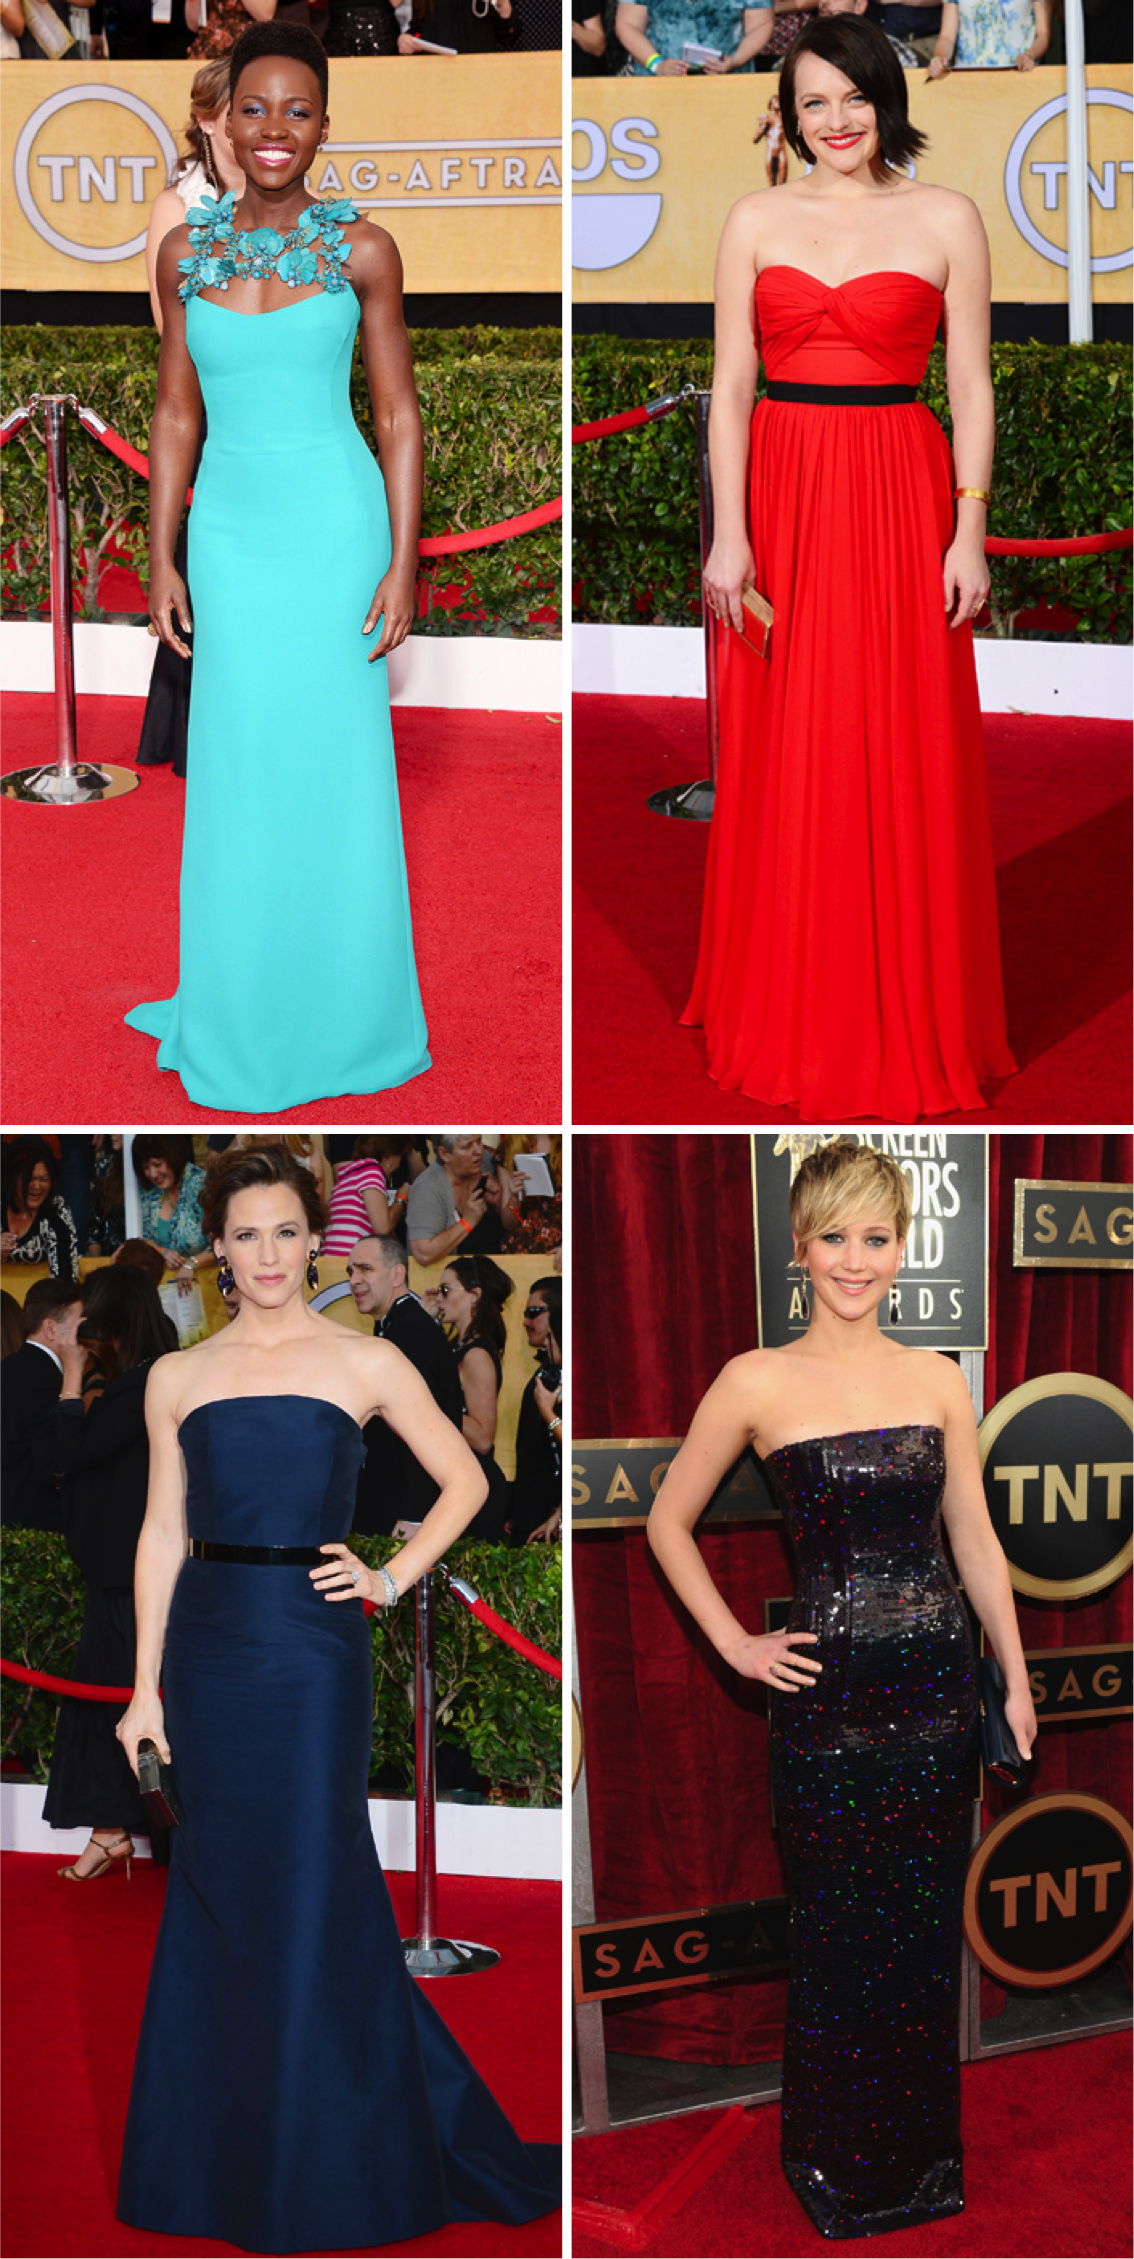 SAG AWARDS 2014 - Best Dressed